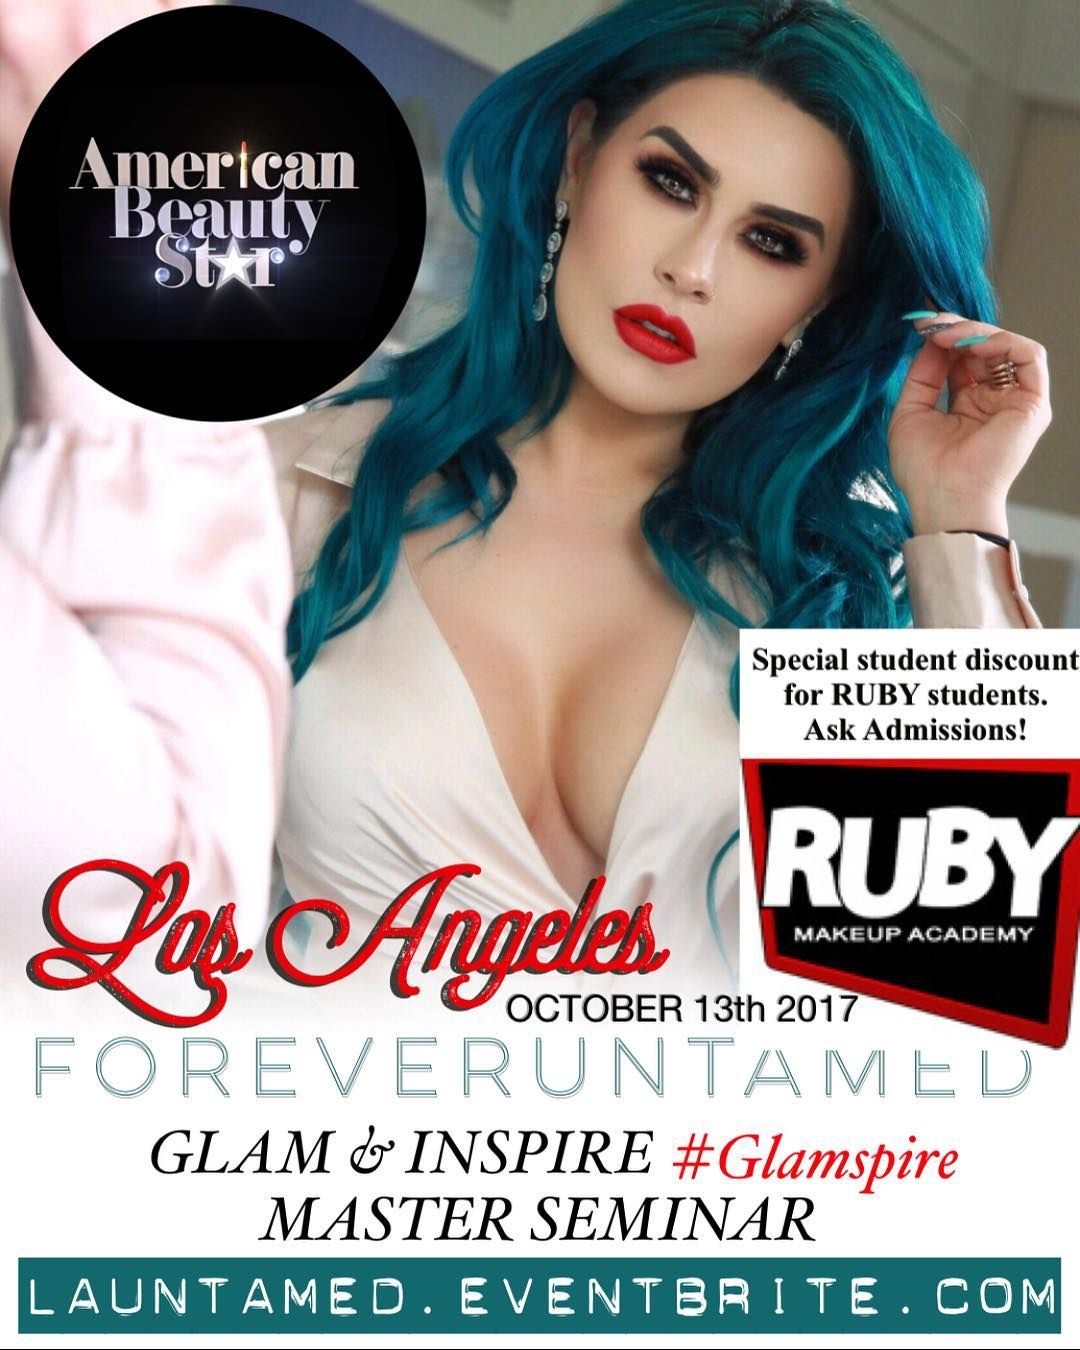 LOS ANGELES OCTOBER 13th at rubymakeupacademy in NORTH